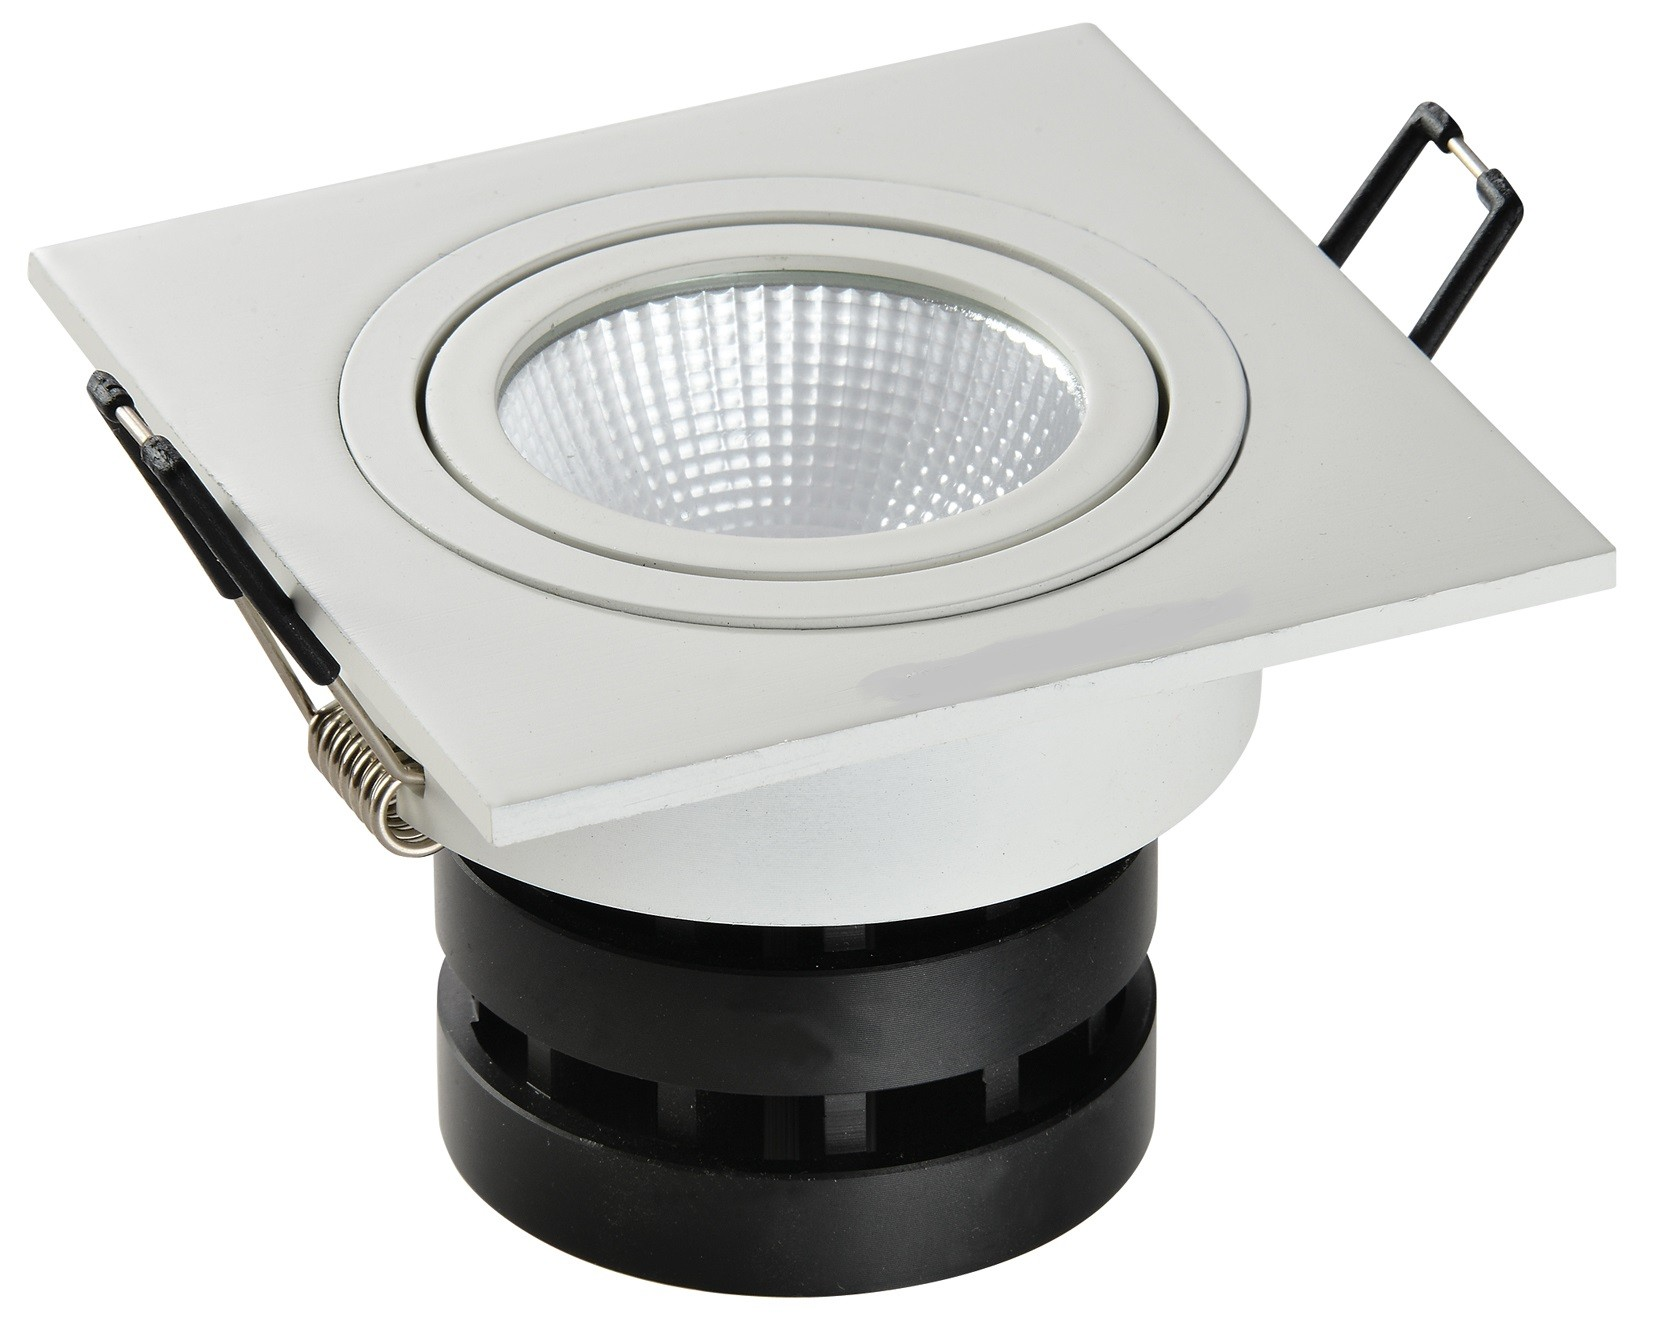 Projecteur Exterieur Encastrable Orientable Spot Led Carré 4x6w Encastrable Dimmable Et Orientable Sow Led